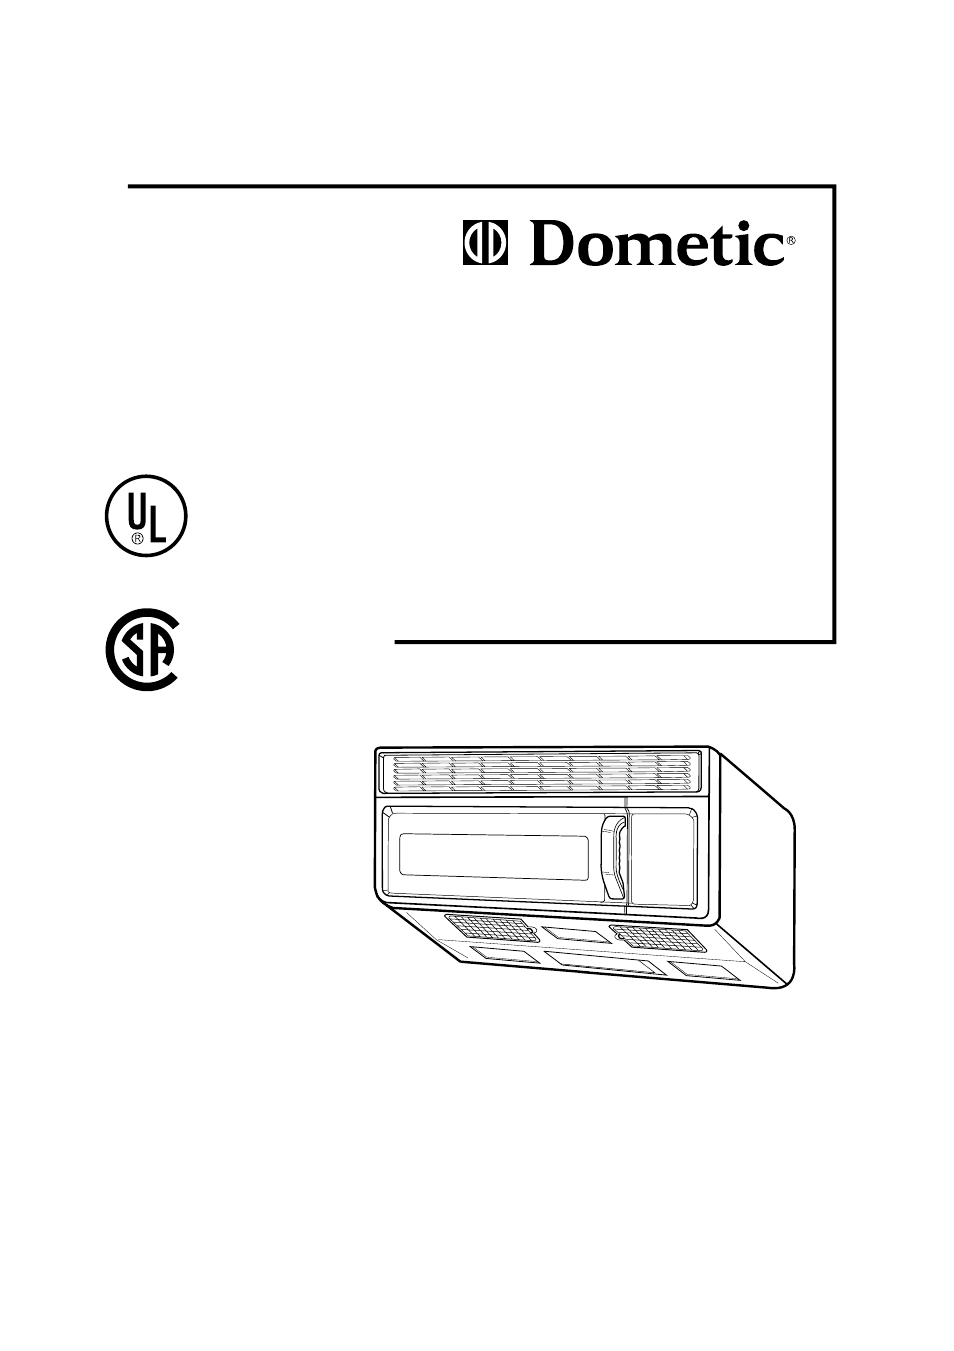 panasonic dimension 4 microwave convection oven user manual